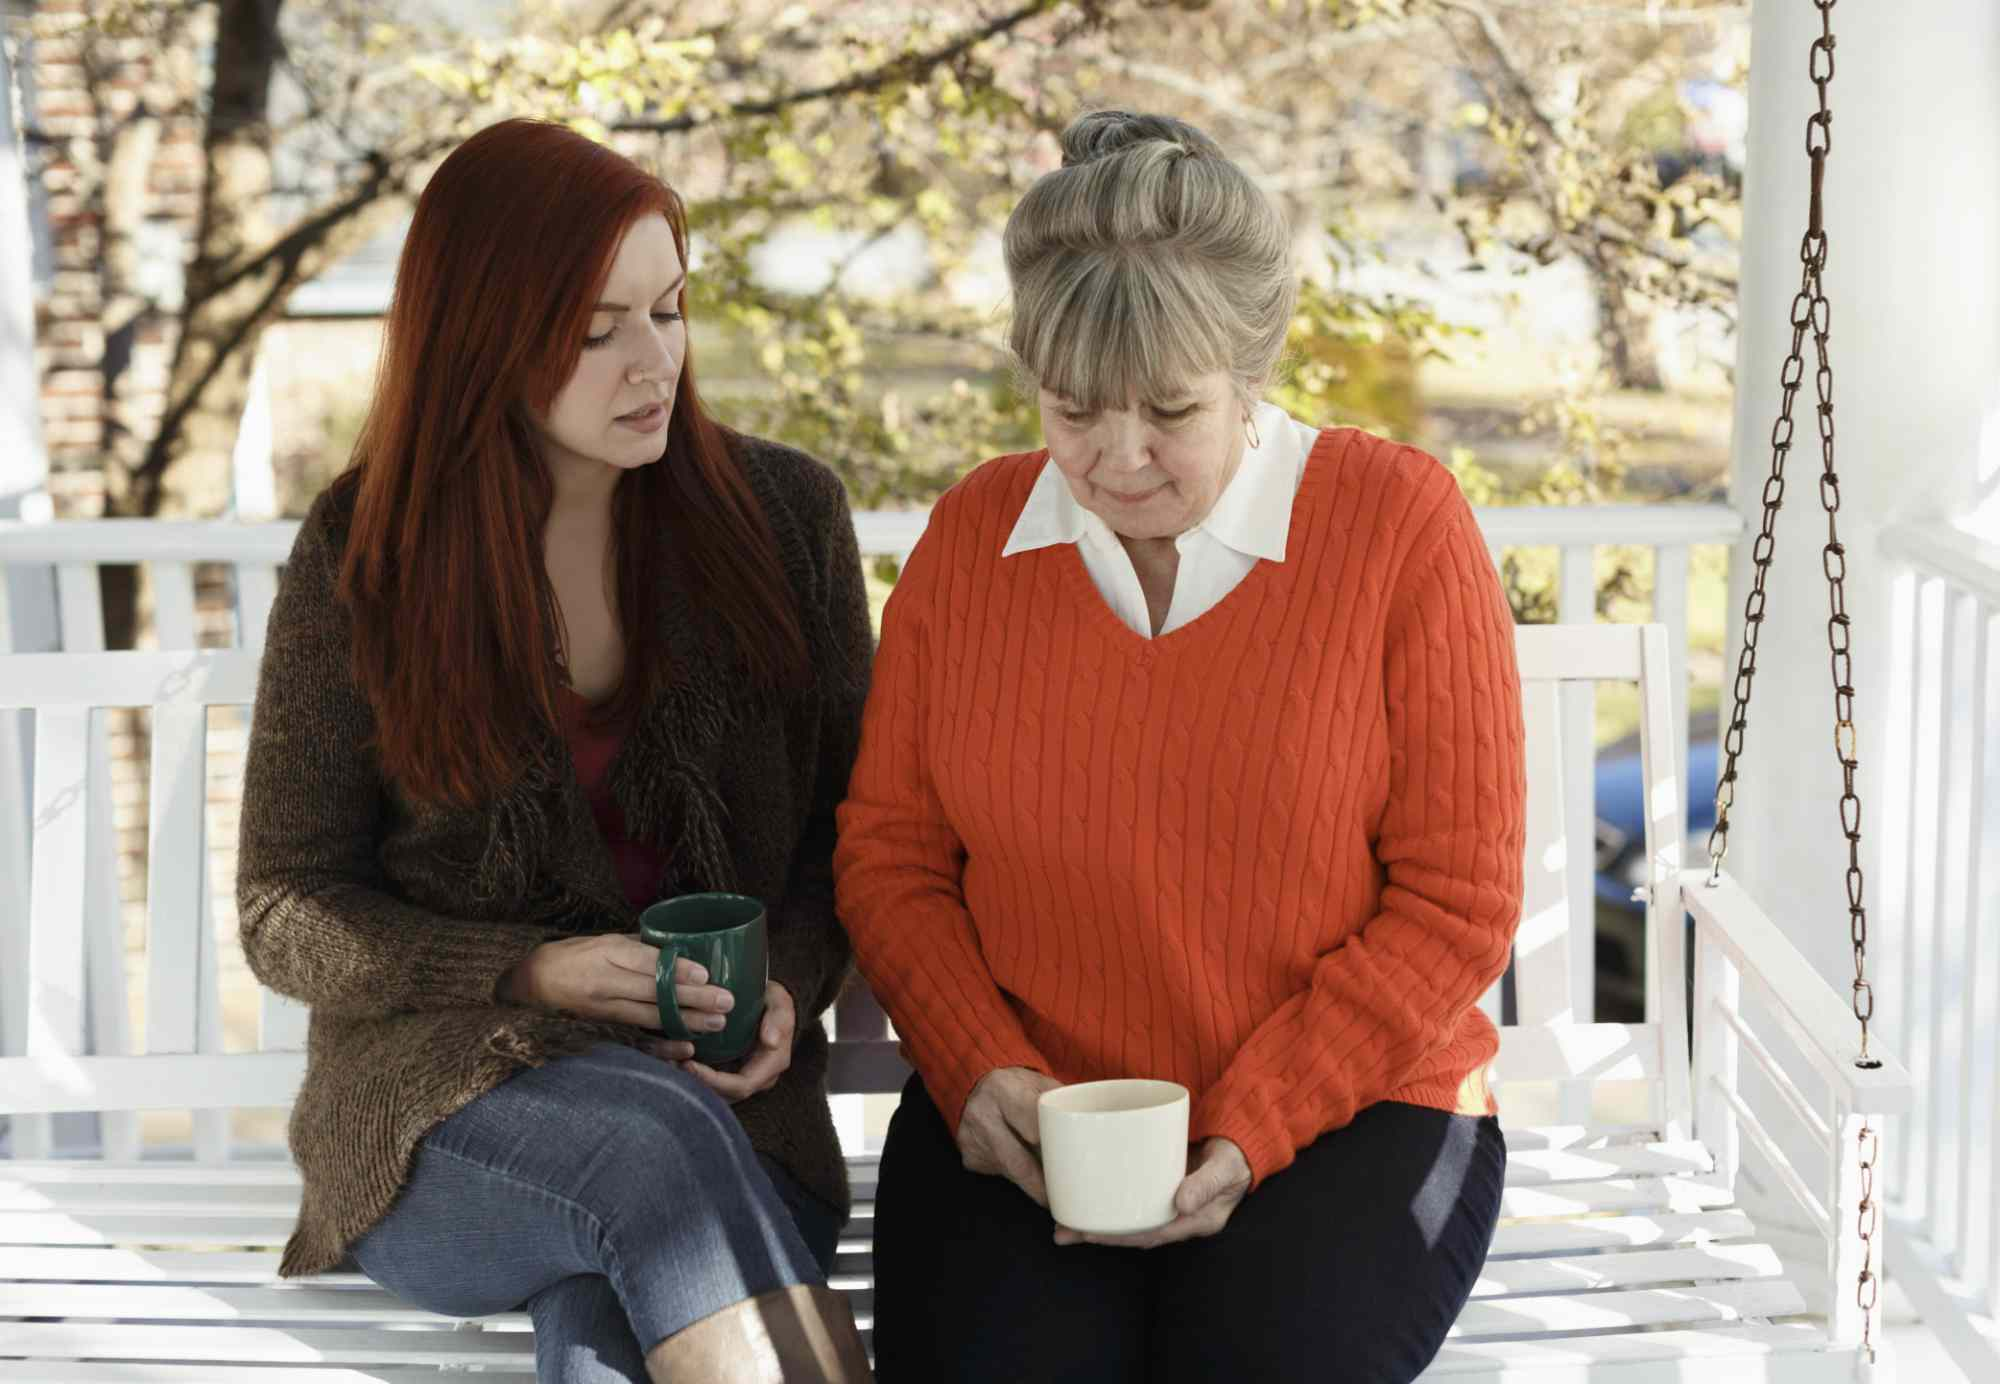 Woman and mature woman sitting on a porch swing, both distressed